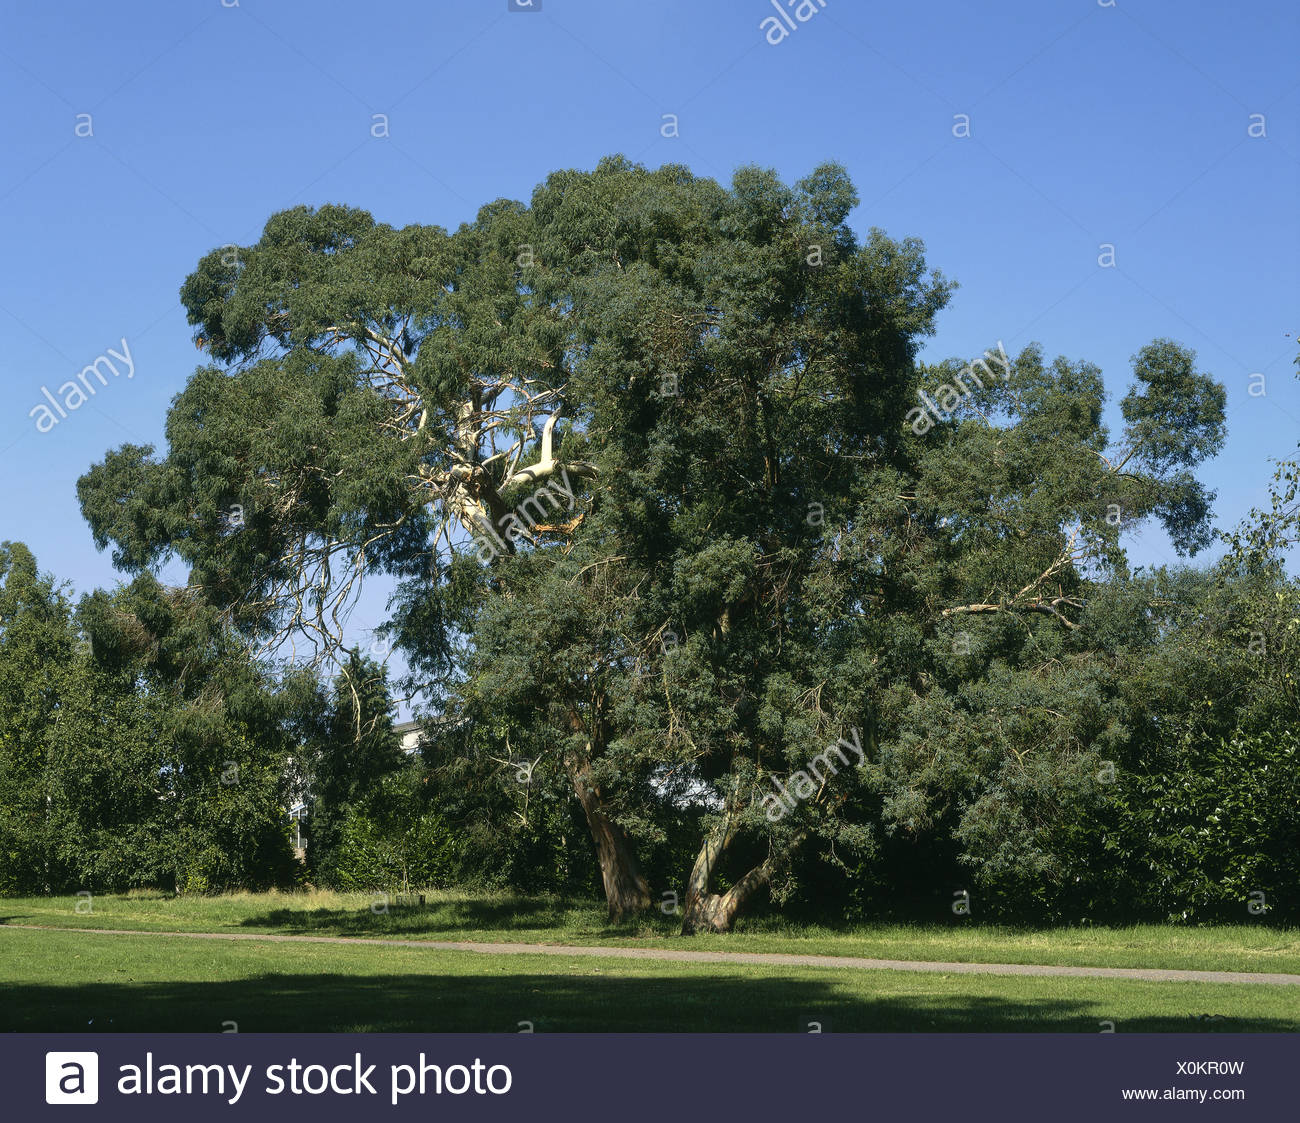 botaniy, Eucalyptus parvifolia, 'Small leaved Gum' at Kew Gardens, London, Great Britain, Additional-Rights-Clearance-Info-Not-Available - Stock Image